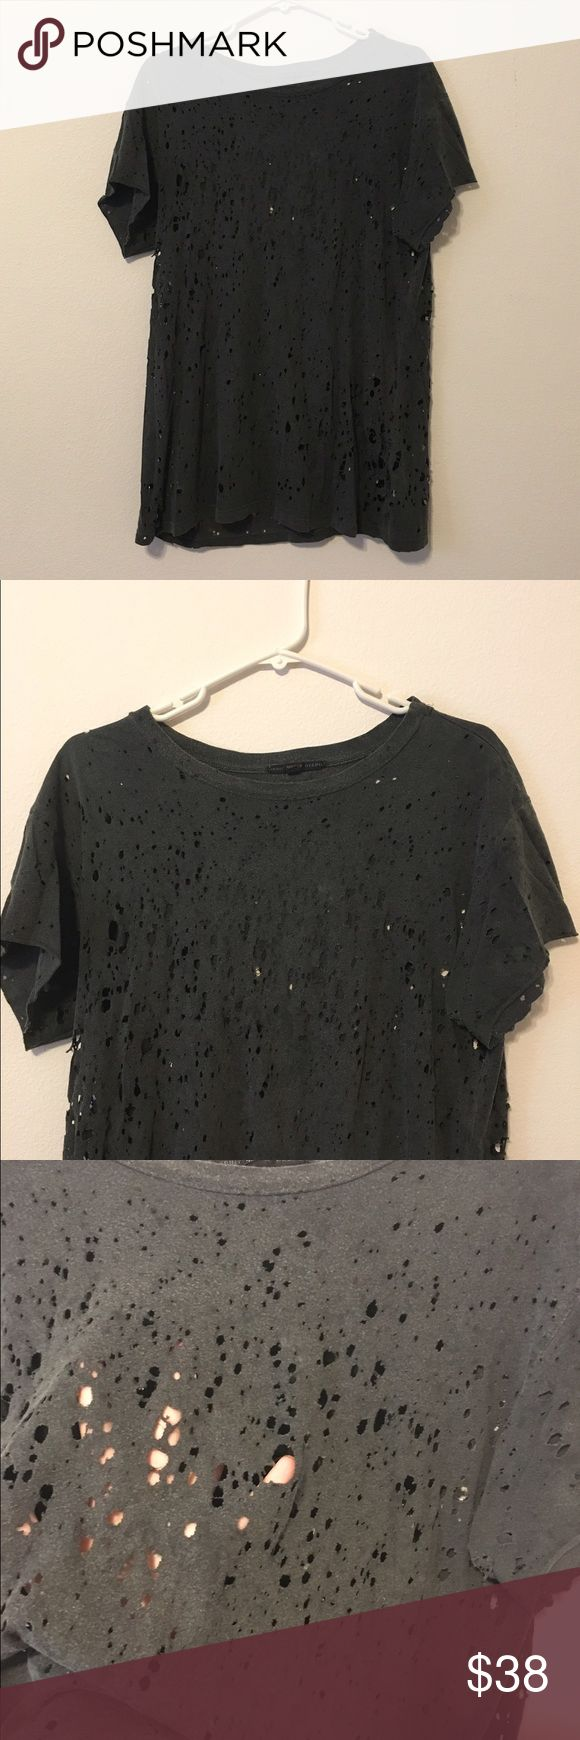 Holy shirt Perfect for those with edgy/grunge sexy hardcore style. This shirt is amazing. Tops